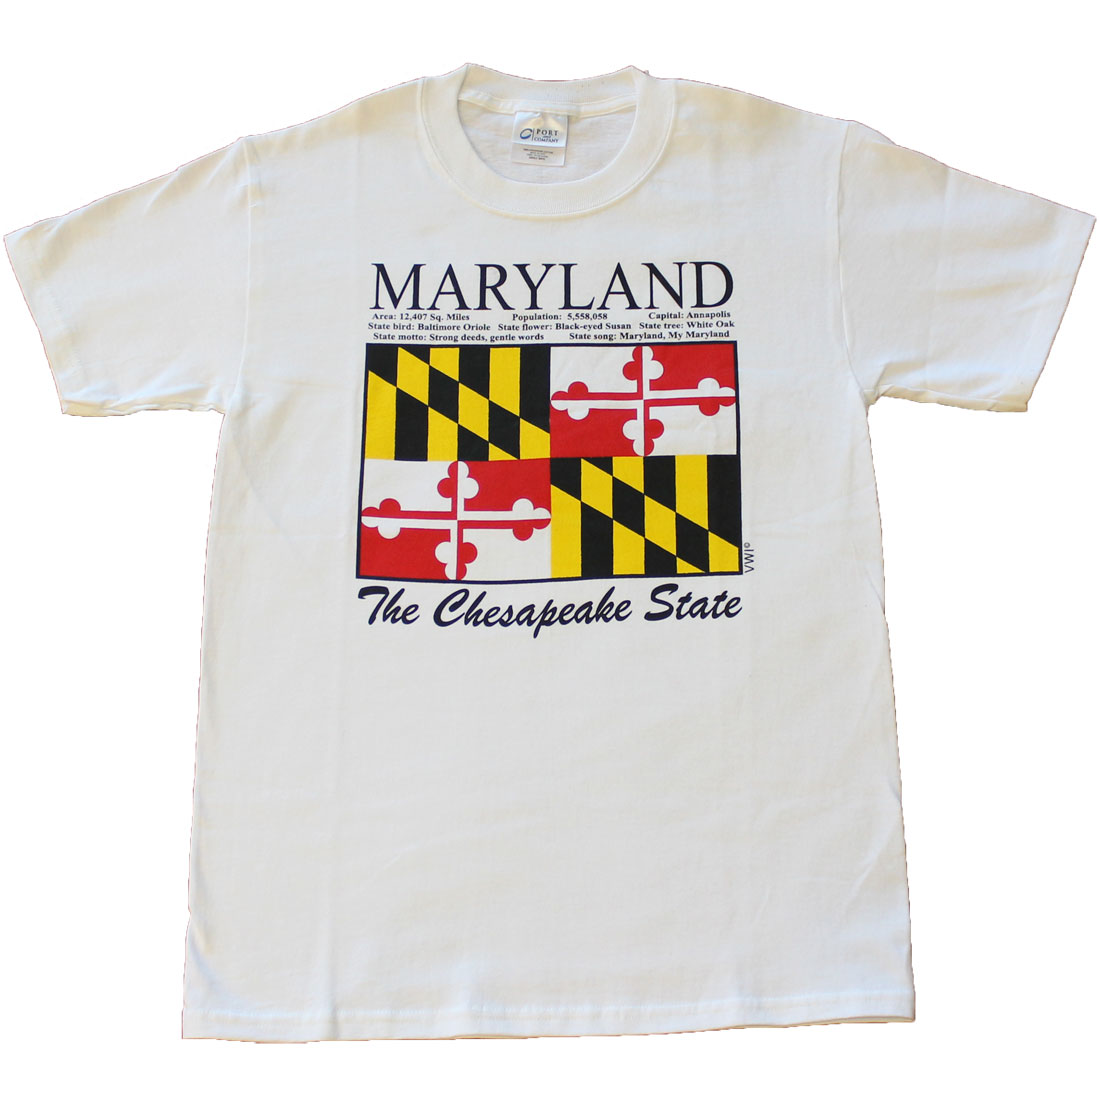 Buy Maryland State T Shirt Flagline